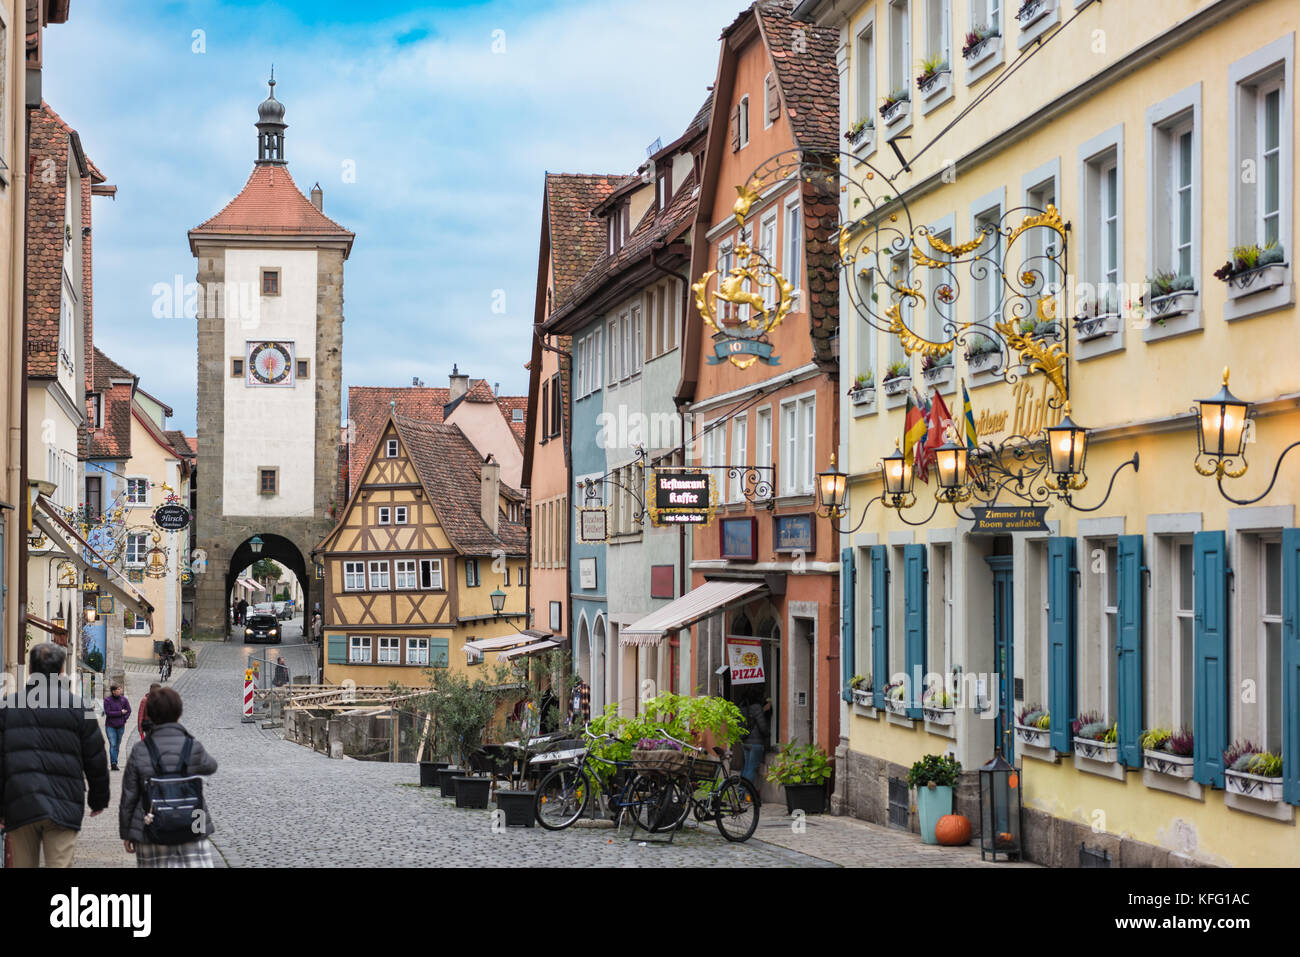 ROTHENBURG, GERMANY - OCTOBER 24, 2017: Unidentifies tourists stroll along on of the famous alleyways that leads - Stock Image